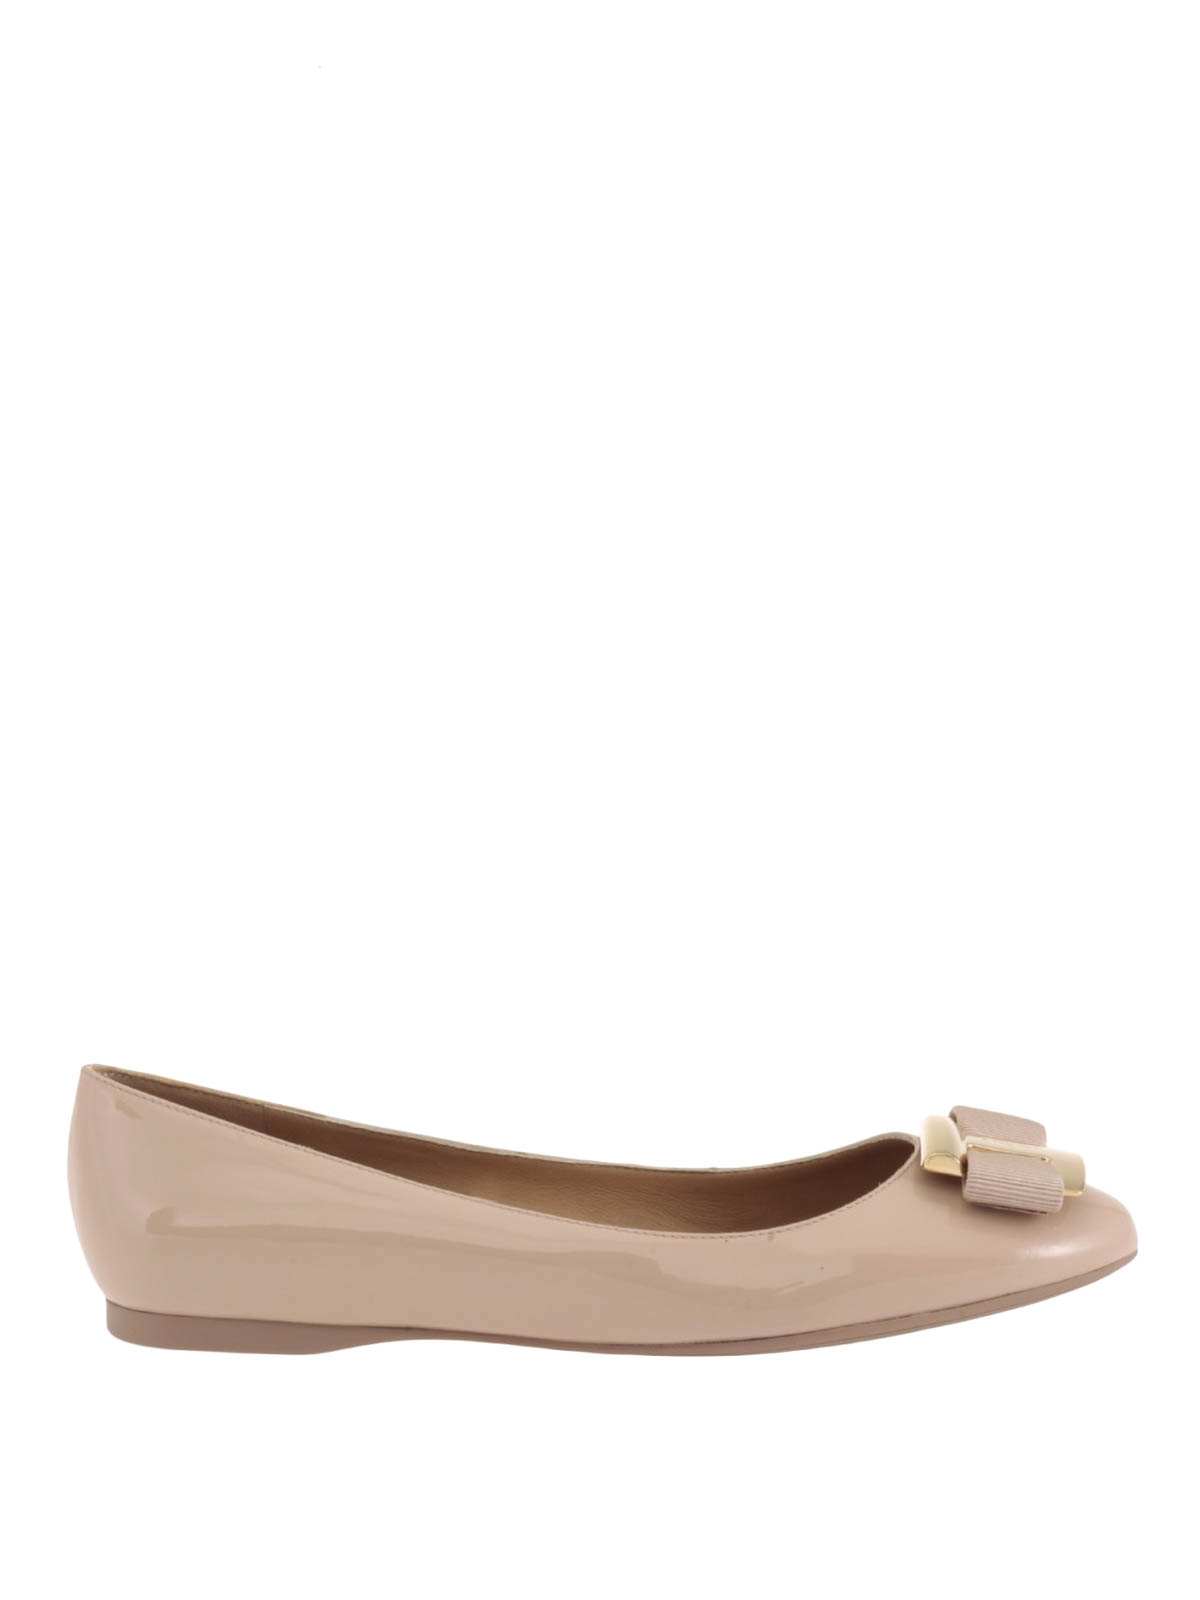 ninna patent leather flat shoes by salvatore ferragamo